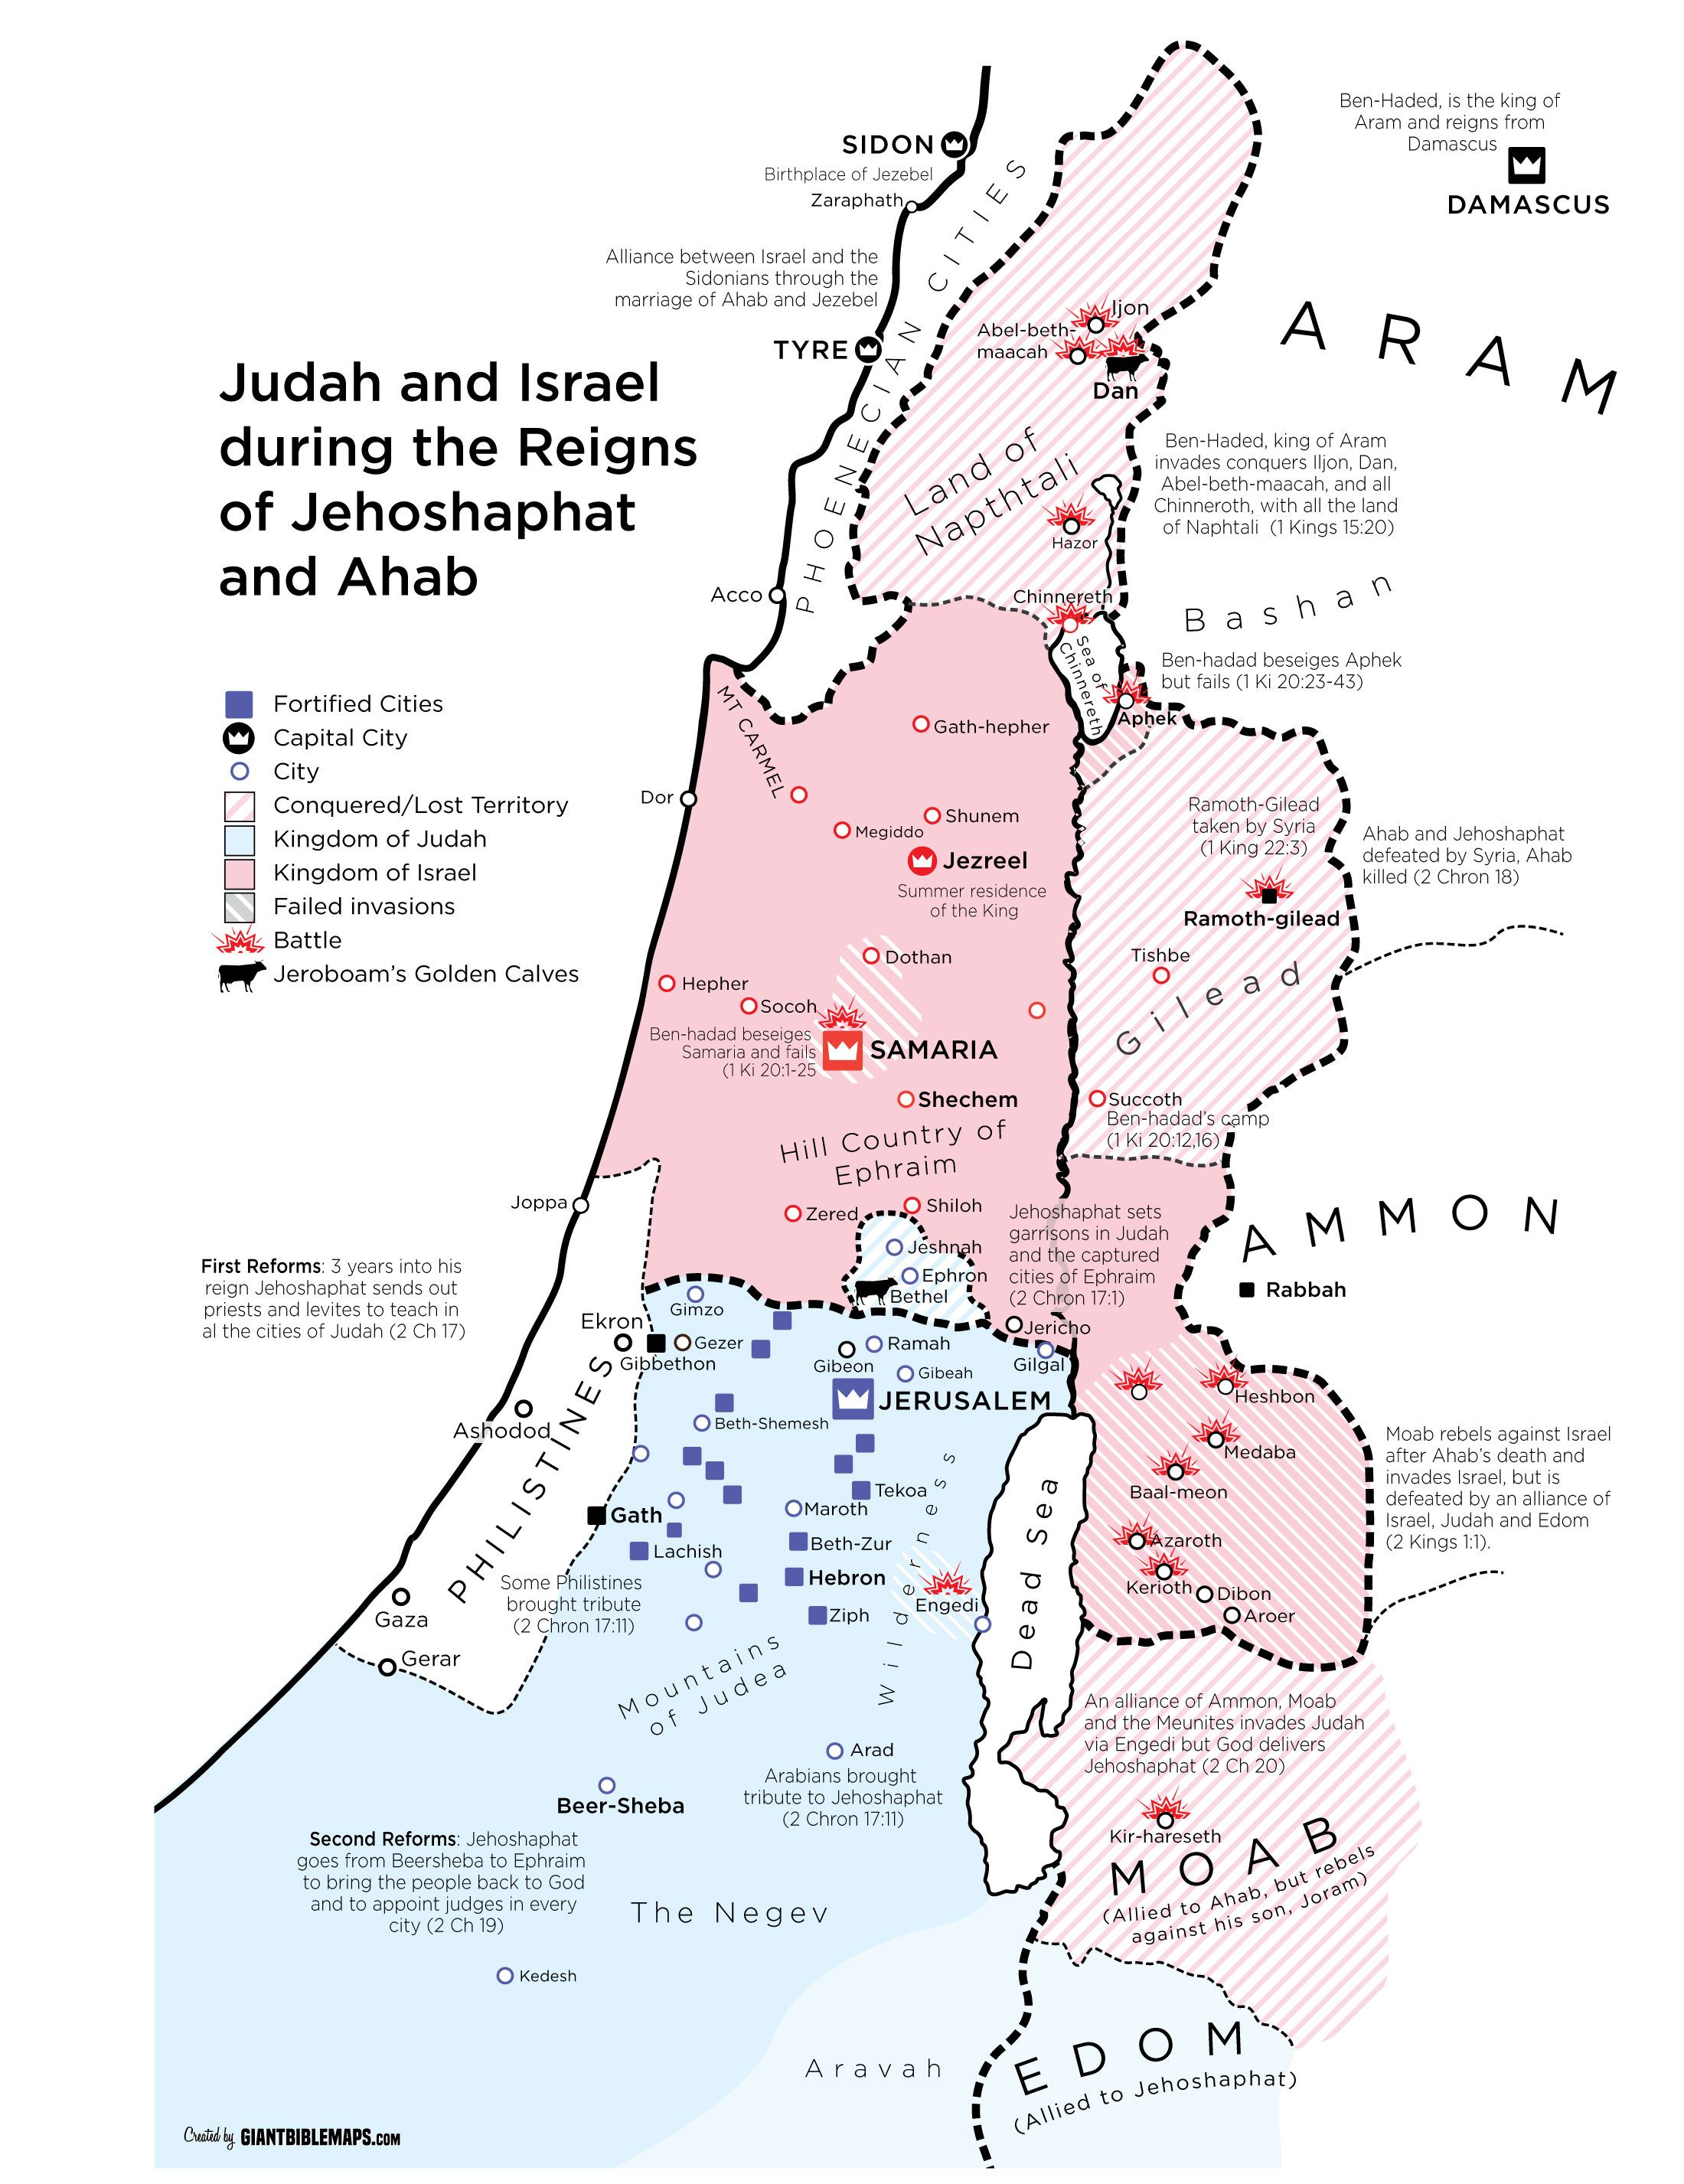 Map Of Israel And Judah During The Reign Of Jehoshaphat